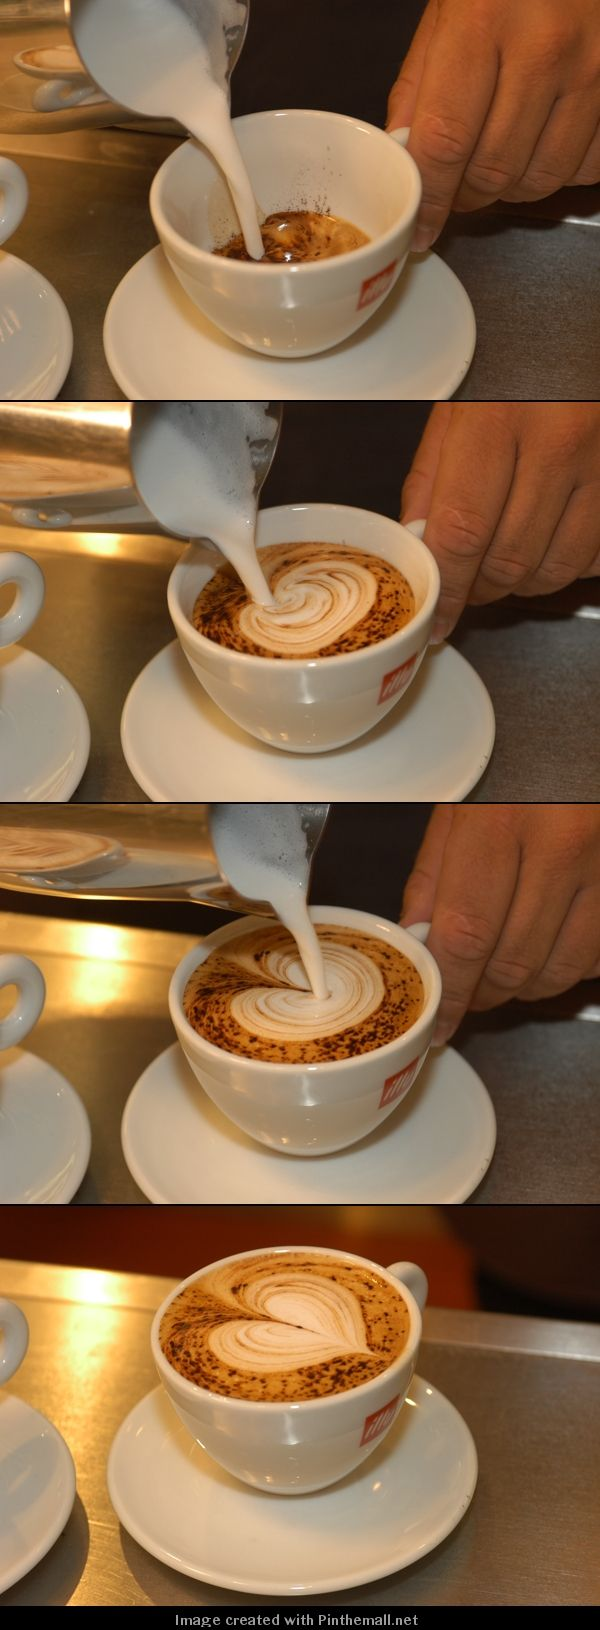 How to make latte art at home without machine